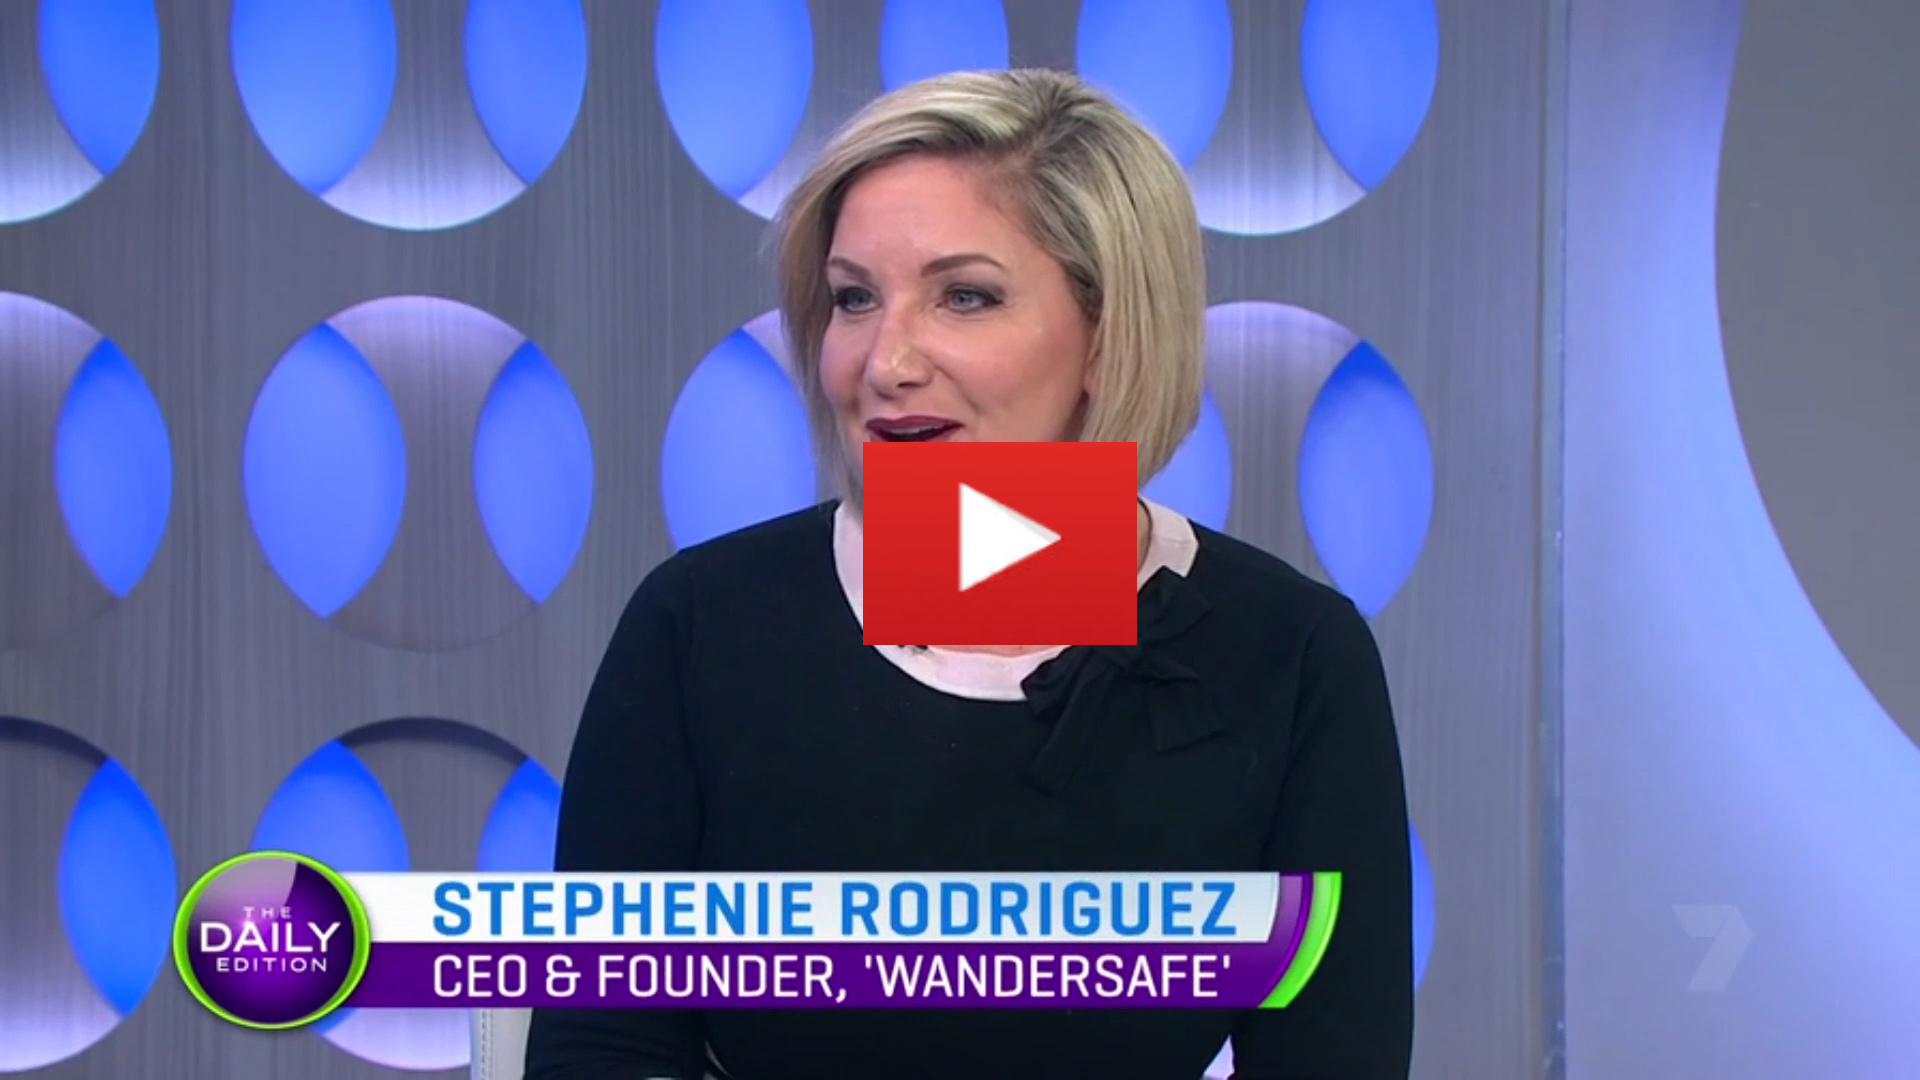 Stephenie Rodriguez chats with the Daily Edition team about recent domestic violence trends in Australia, her 'Think Tank' experience with Sir Richard Branson, her partnership with Ray Lewis and the NRL, as well as how women can keep safe using the WanderSafe safety device and app.